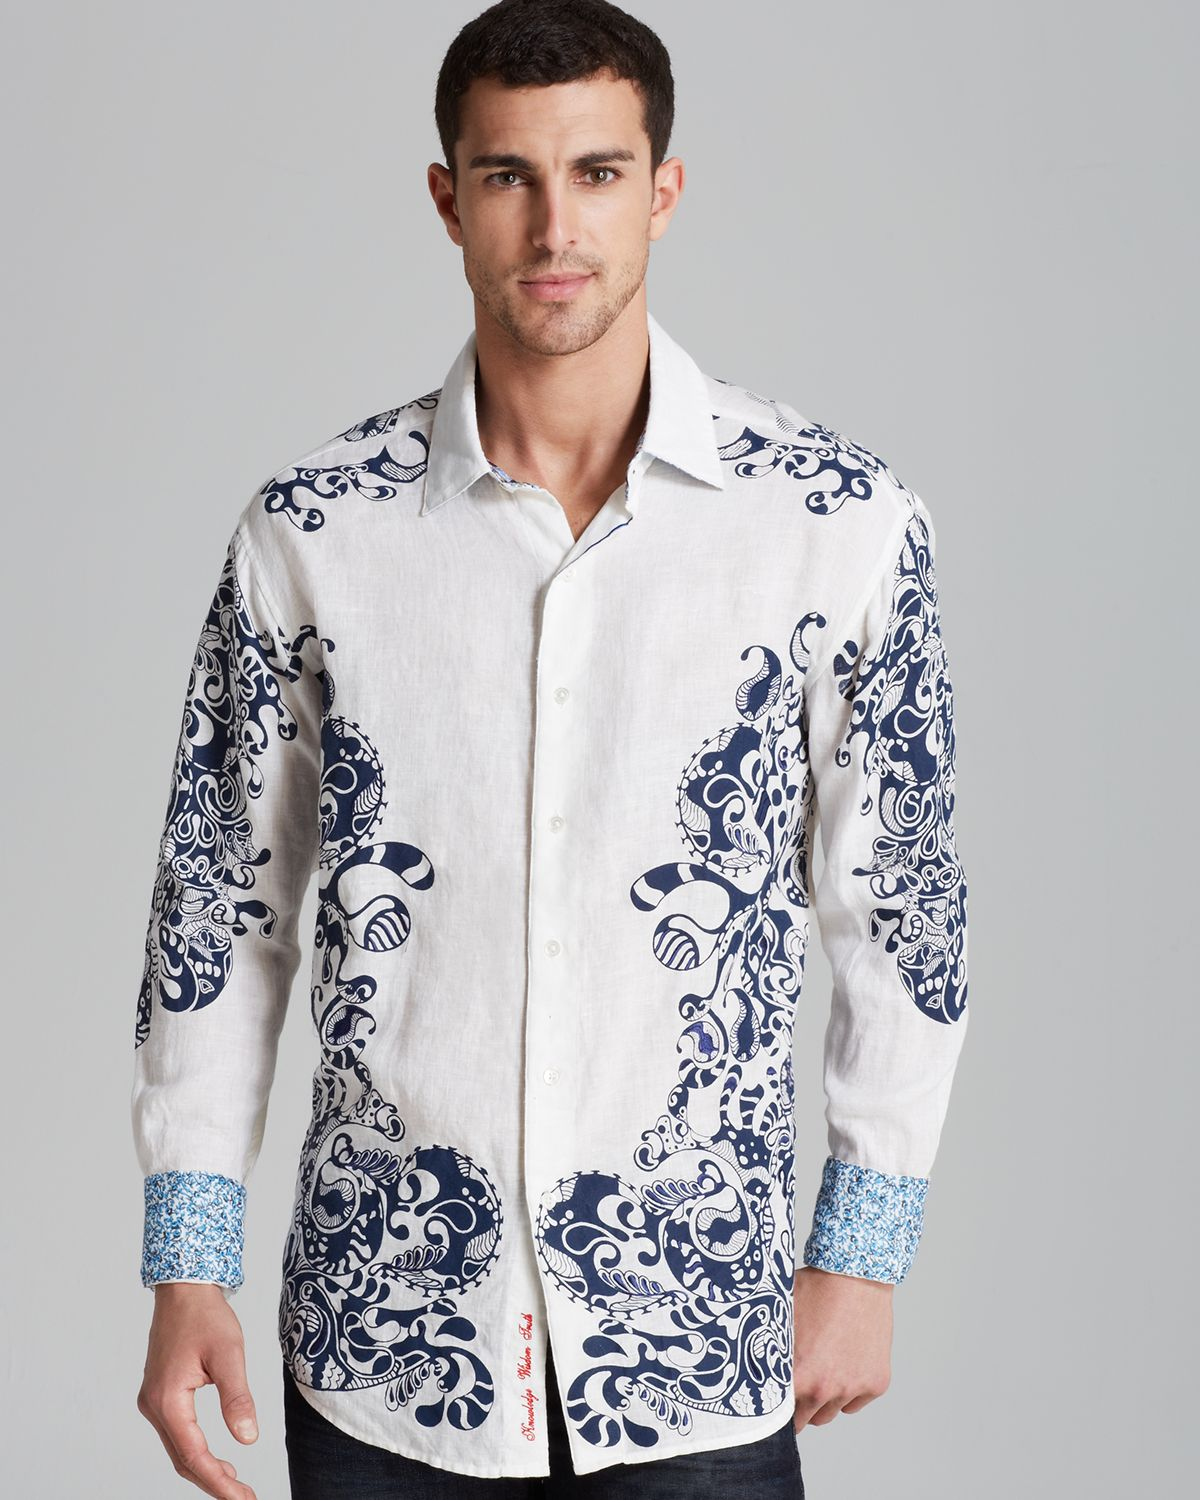 Knock Off Mens Clothing